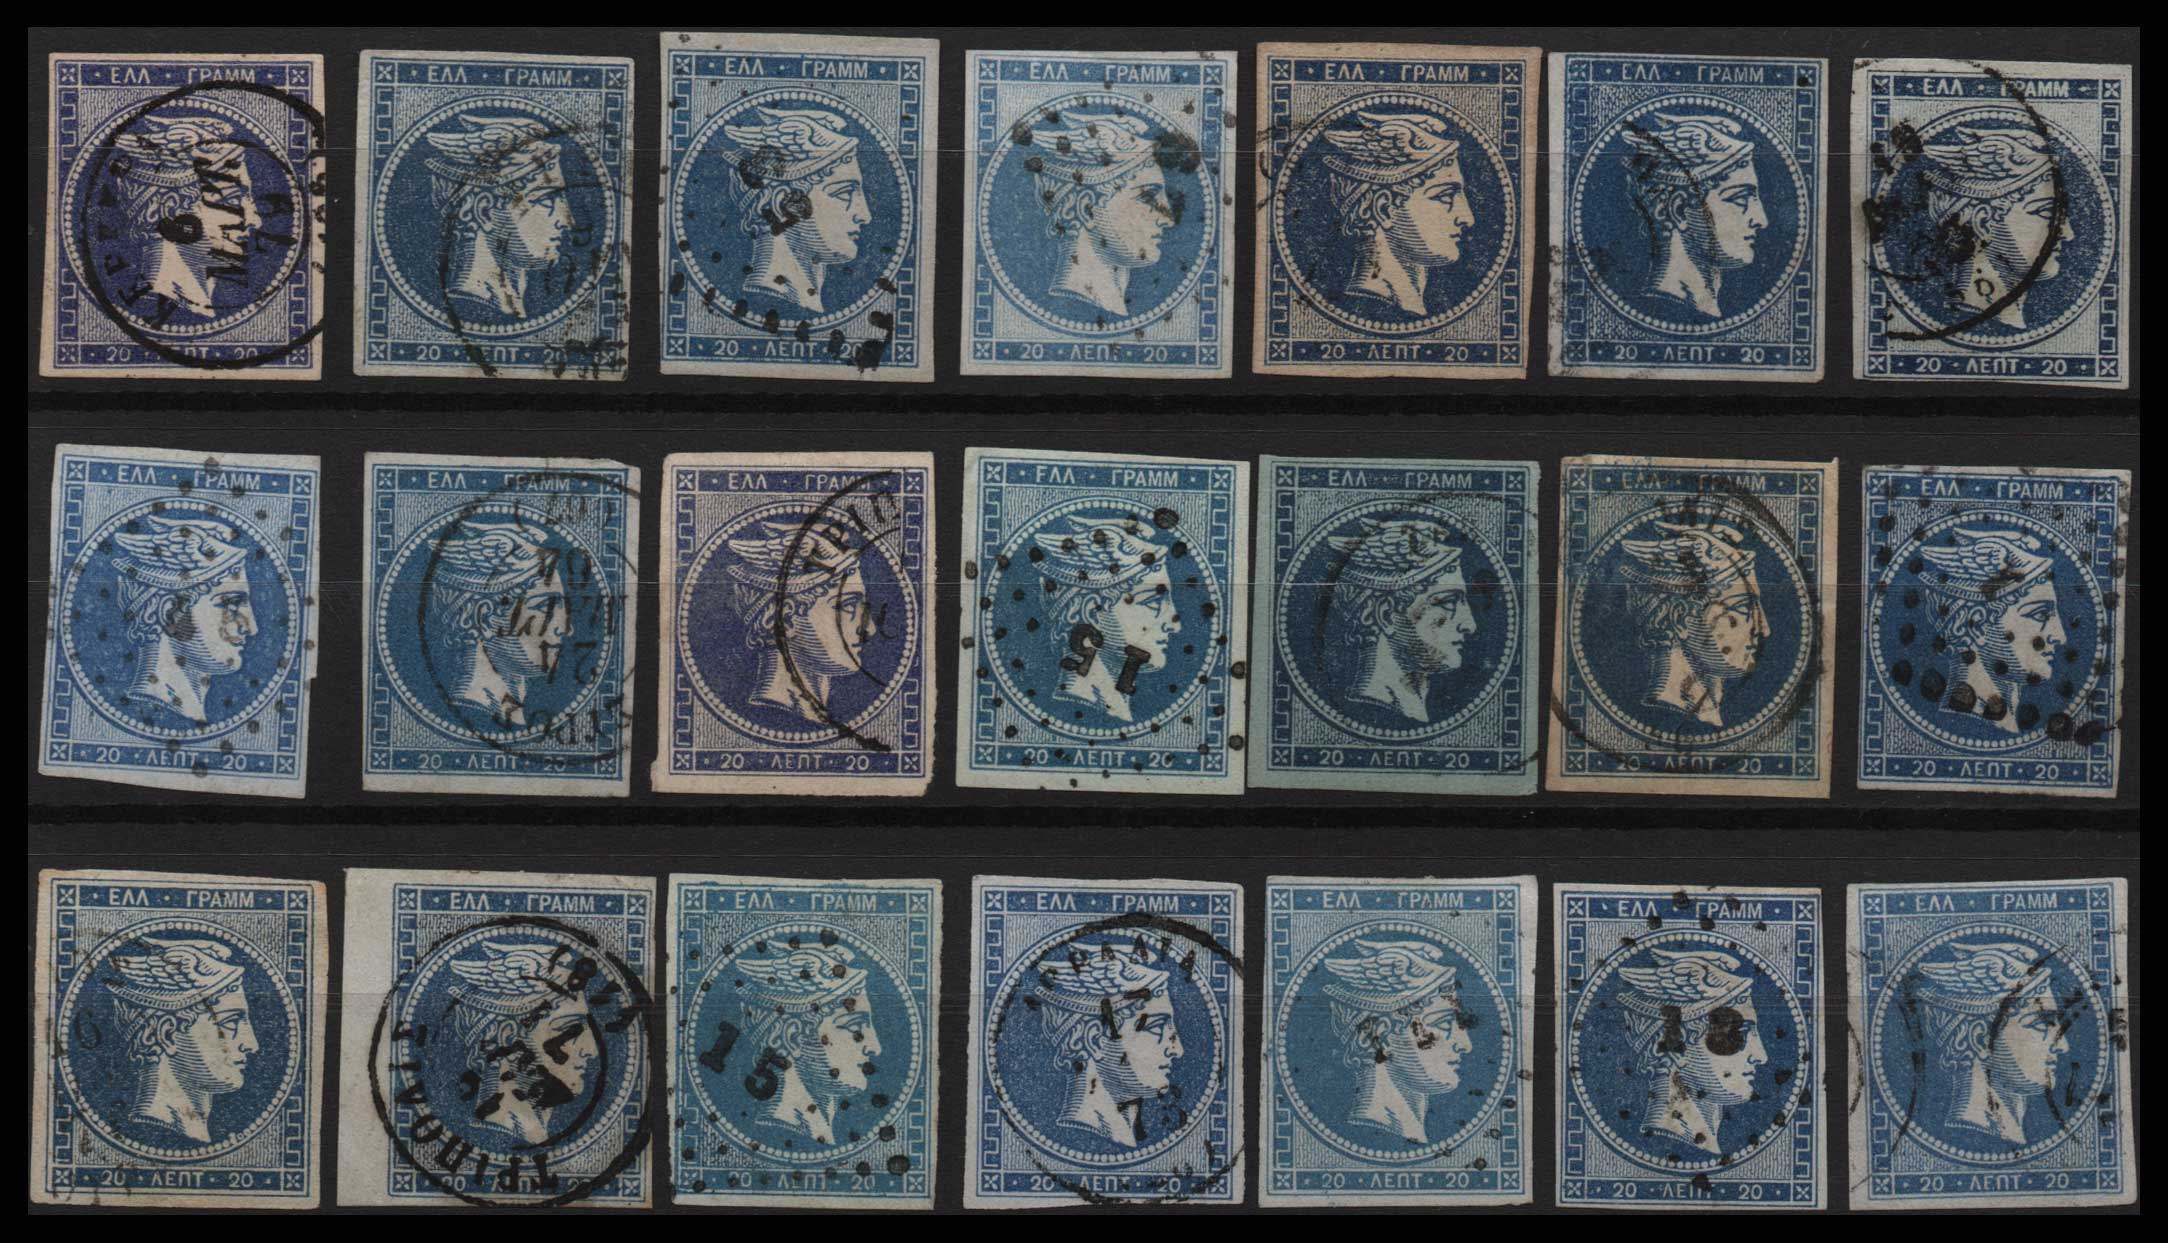 Lot 23 - -  LARGE HERMES HEAD large hermes head -  Athens Auctions Public Auction 82 General Stamp Sale